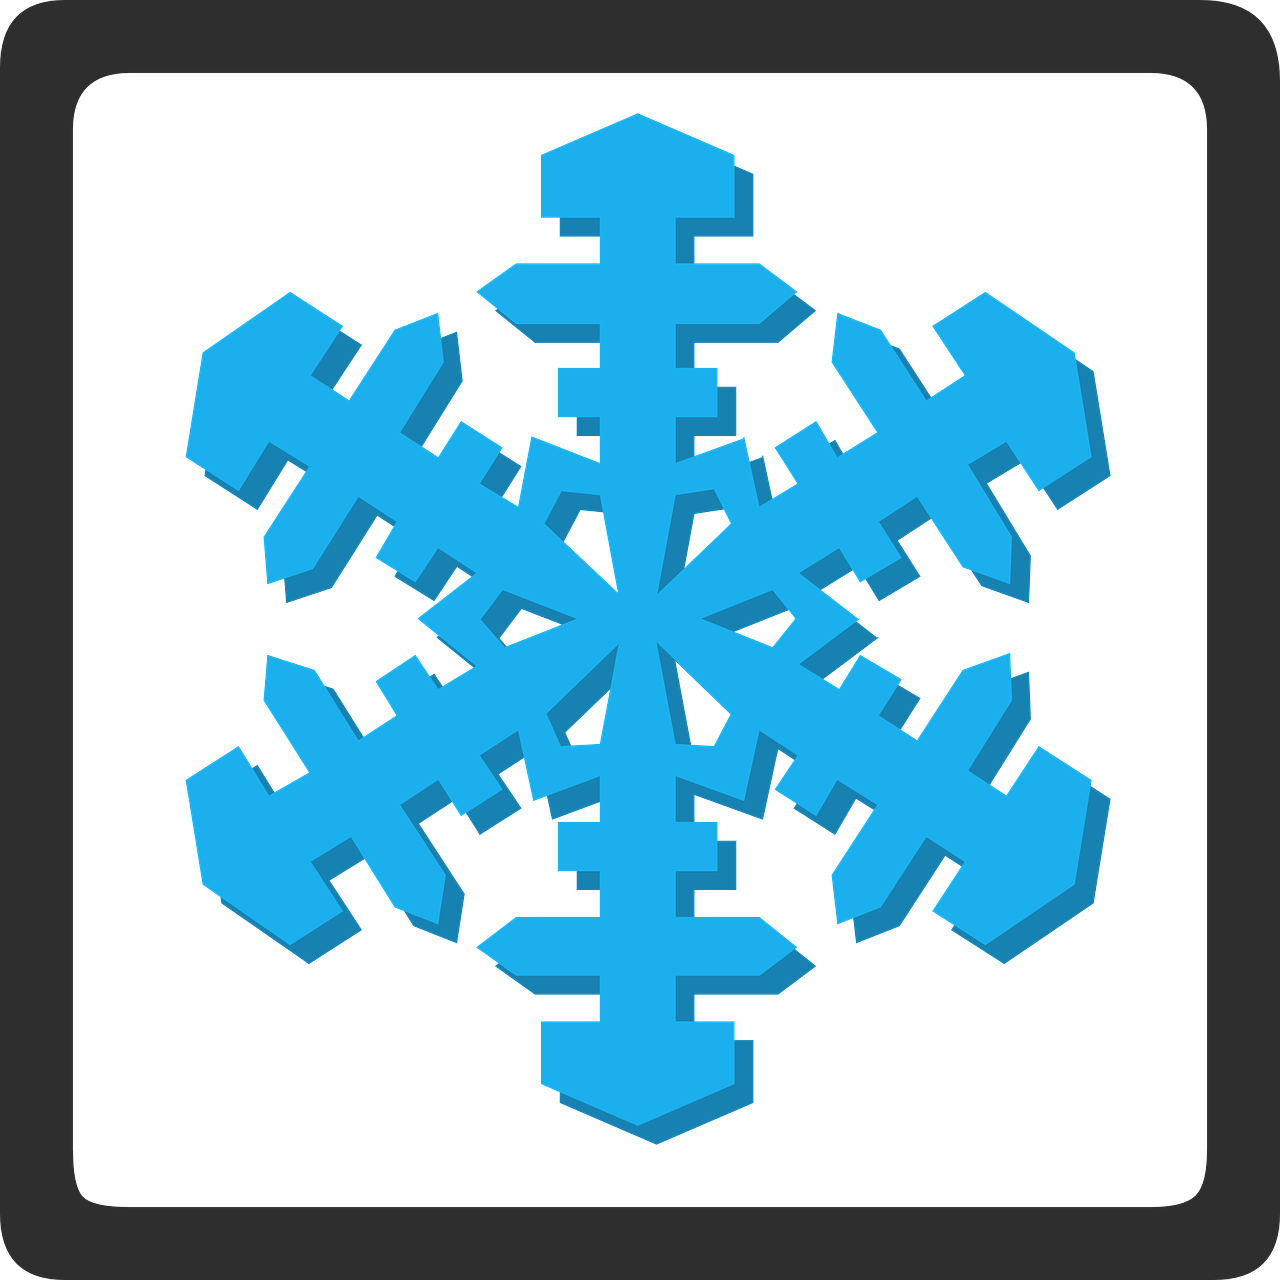 snow flake sign free photo